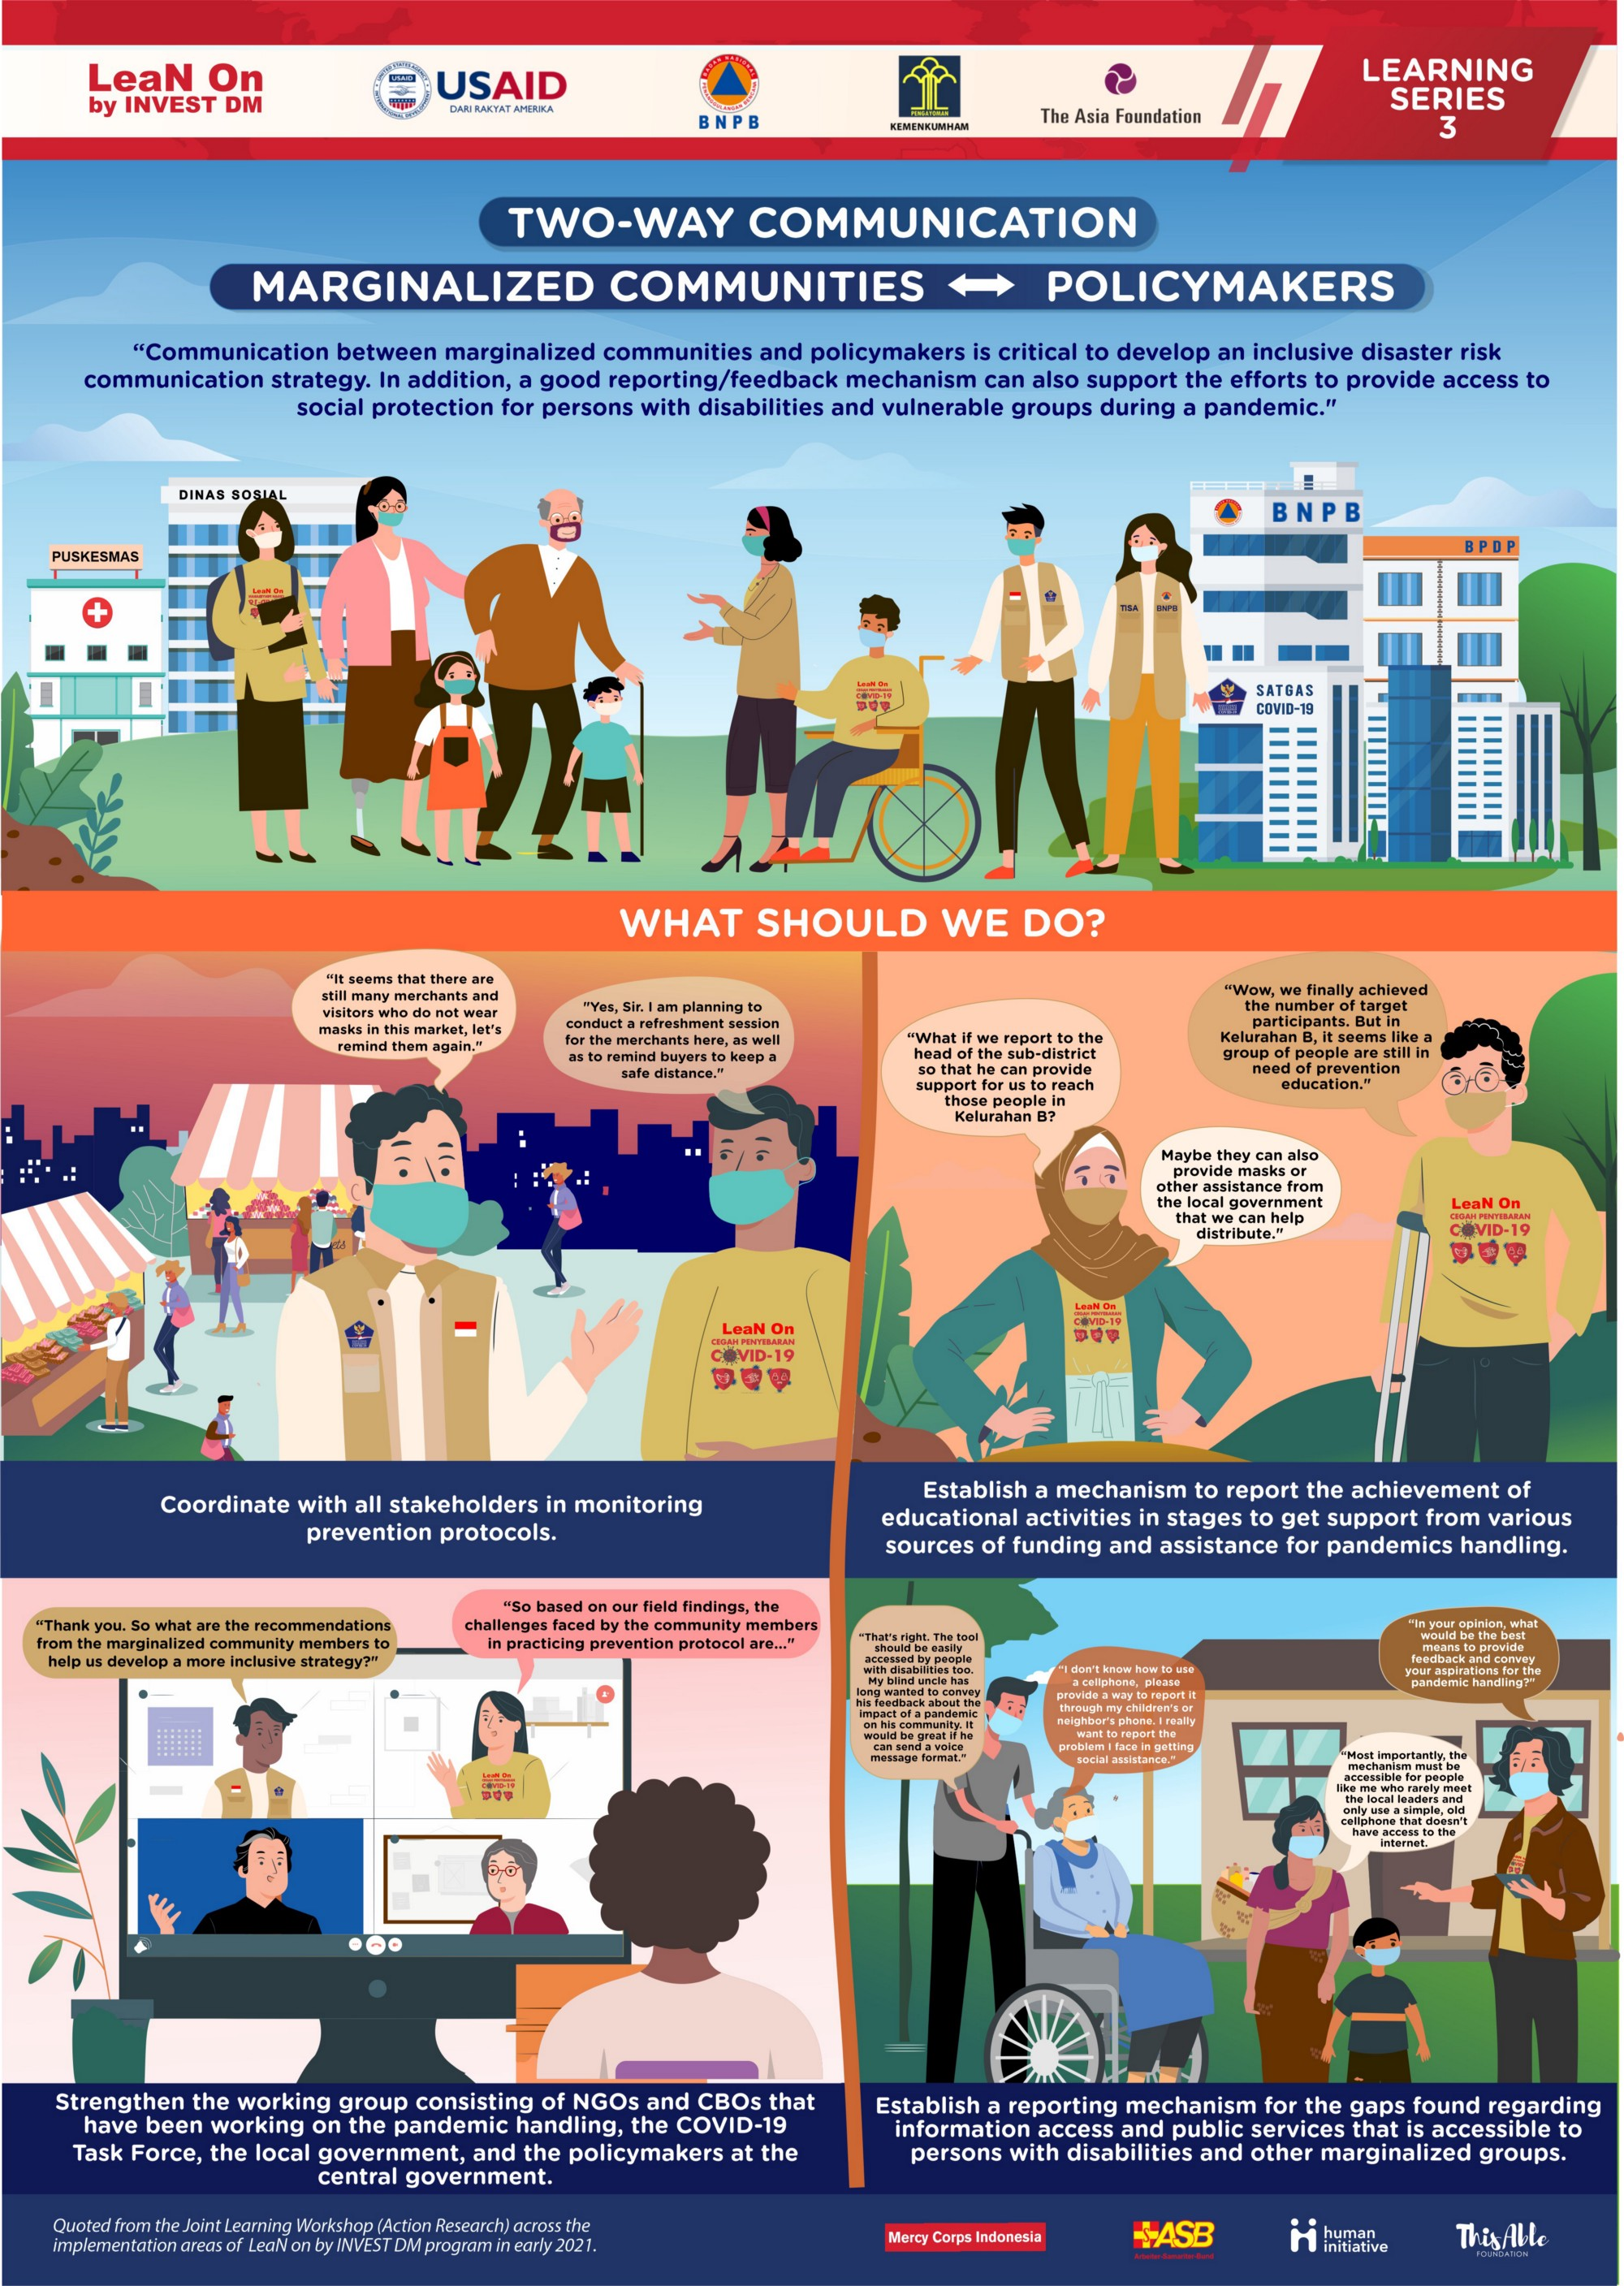 This infographic illustrates the importance of two-way communication access between marginalized groups and policymakers for a more effective and inclusive pandemic response strategy. An audio version of the infographic will be added to this page soon.